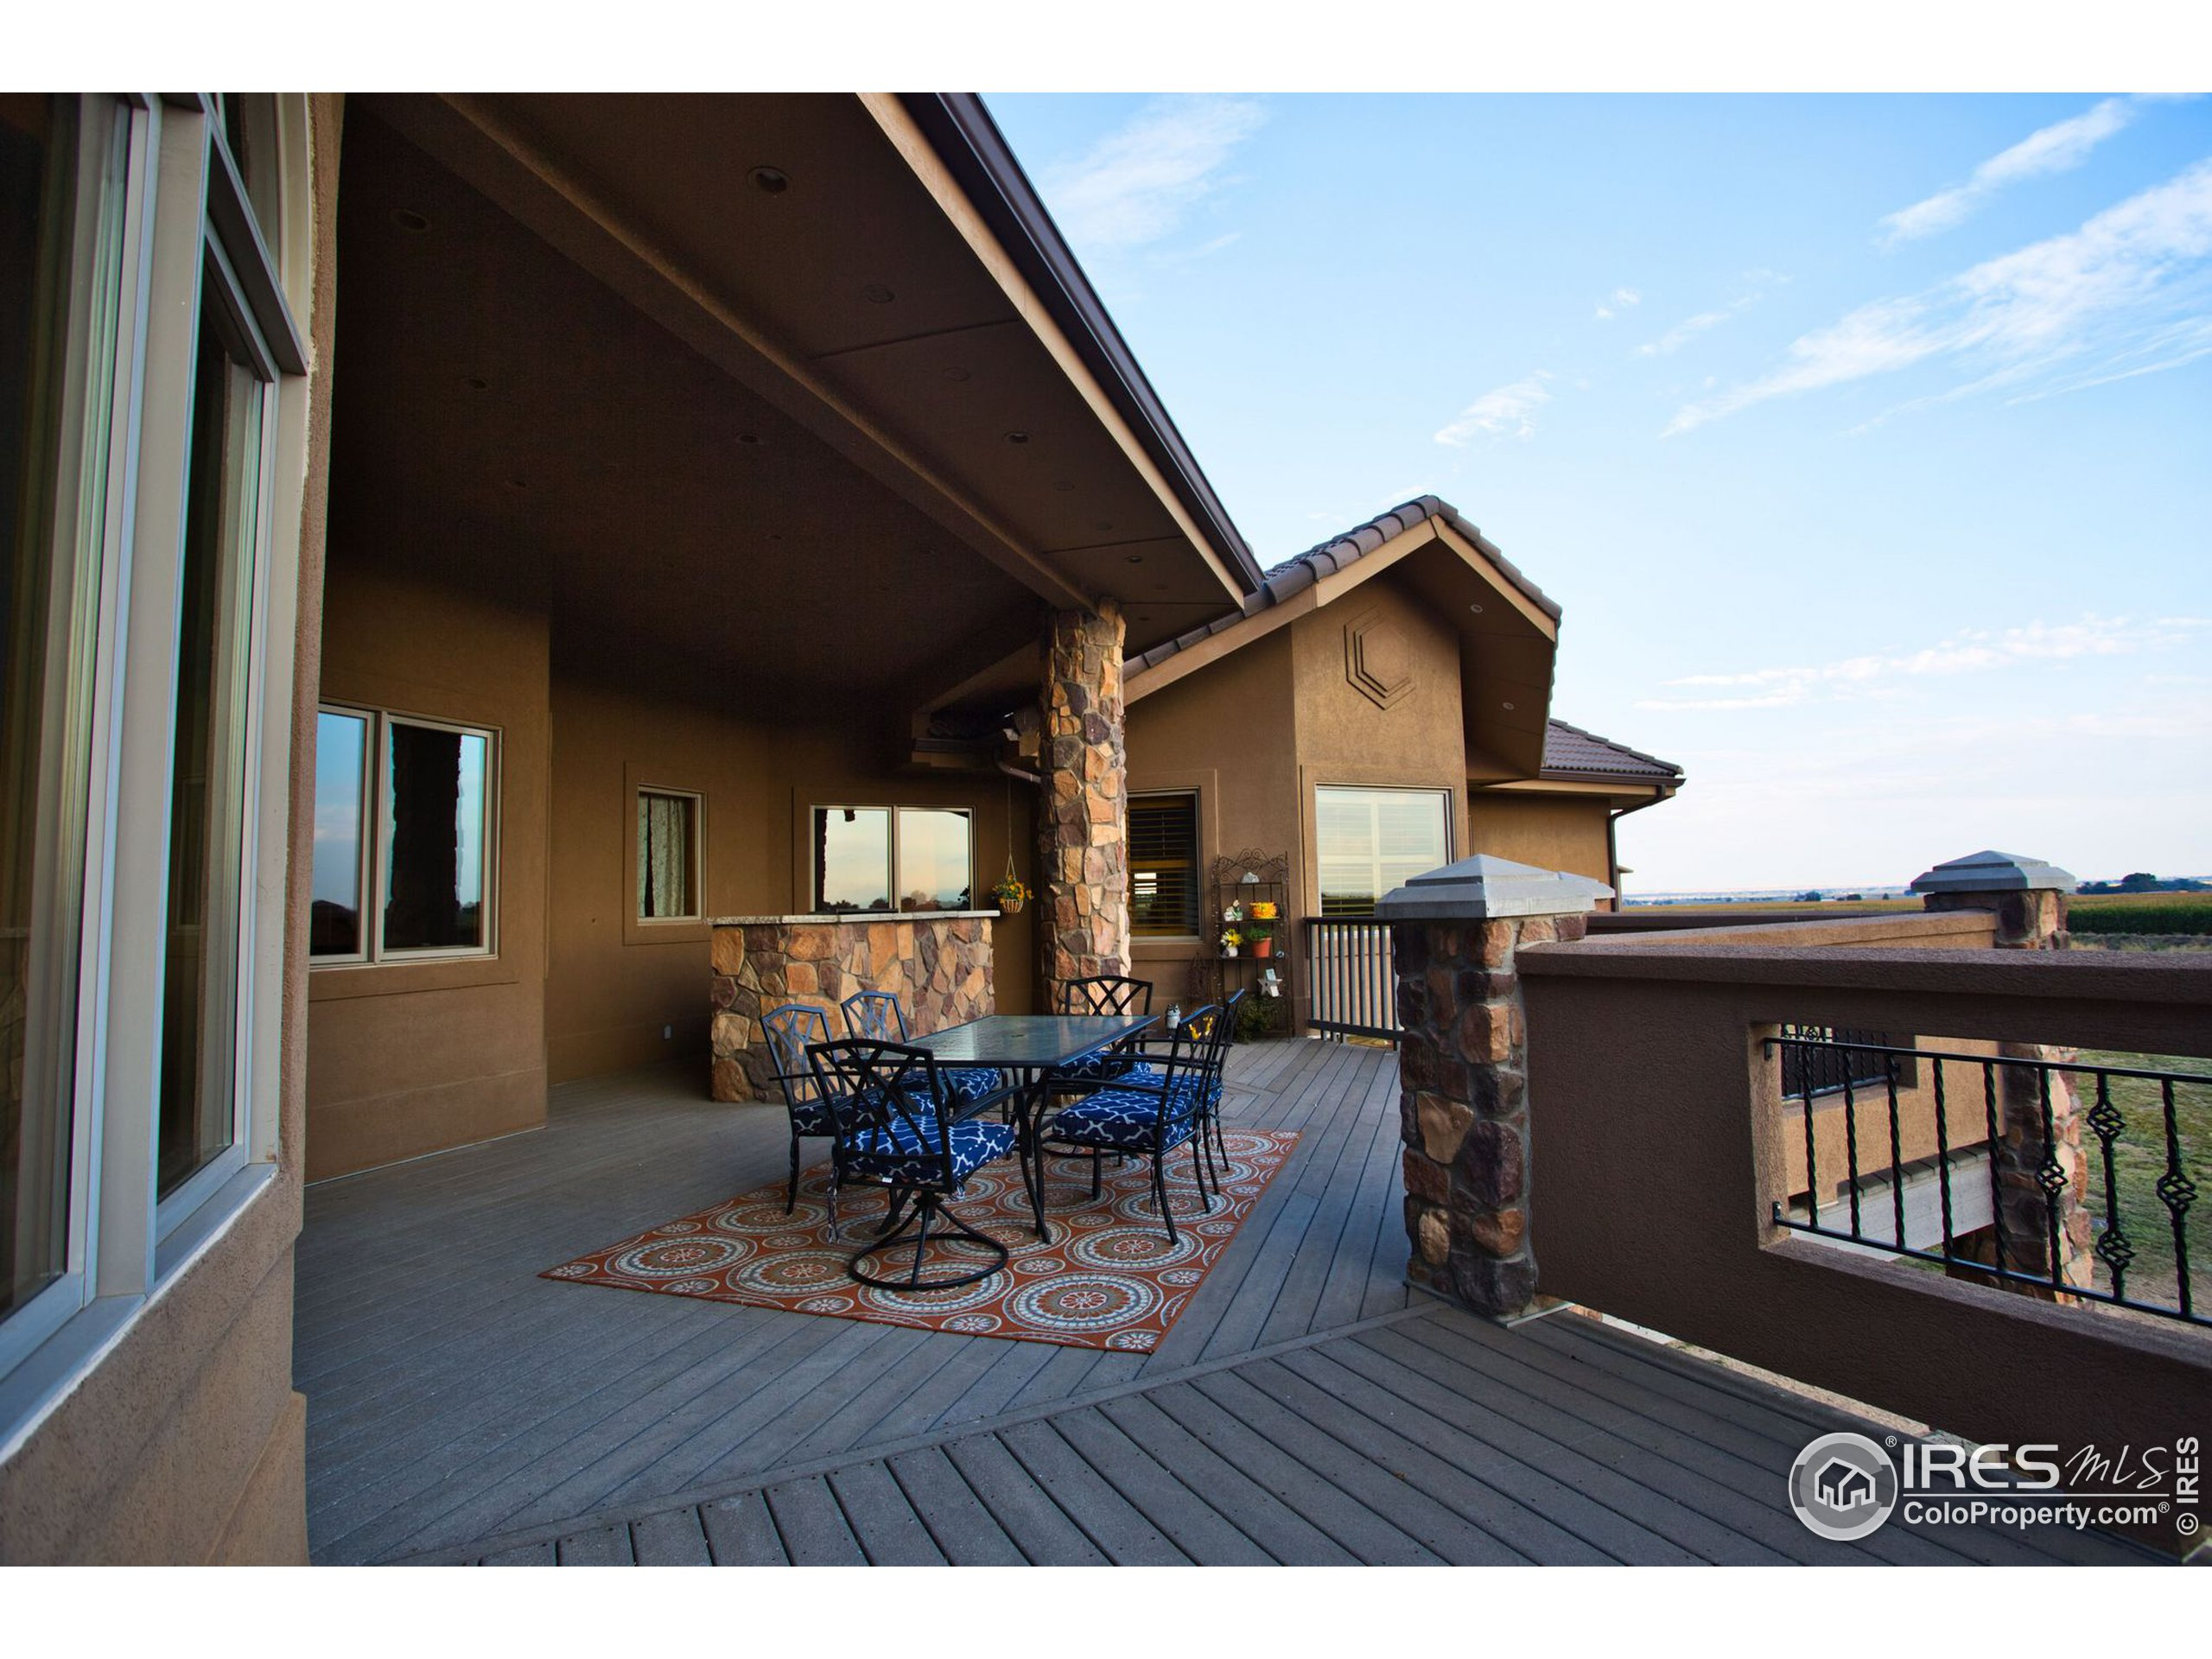 Large deck with views, outdoor kitchen